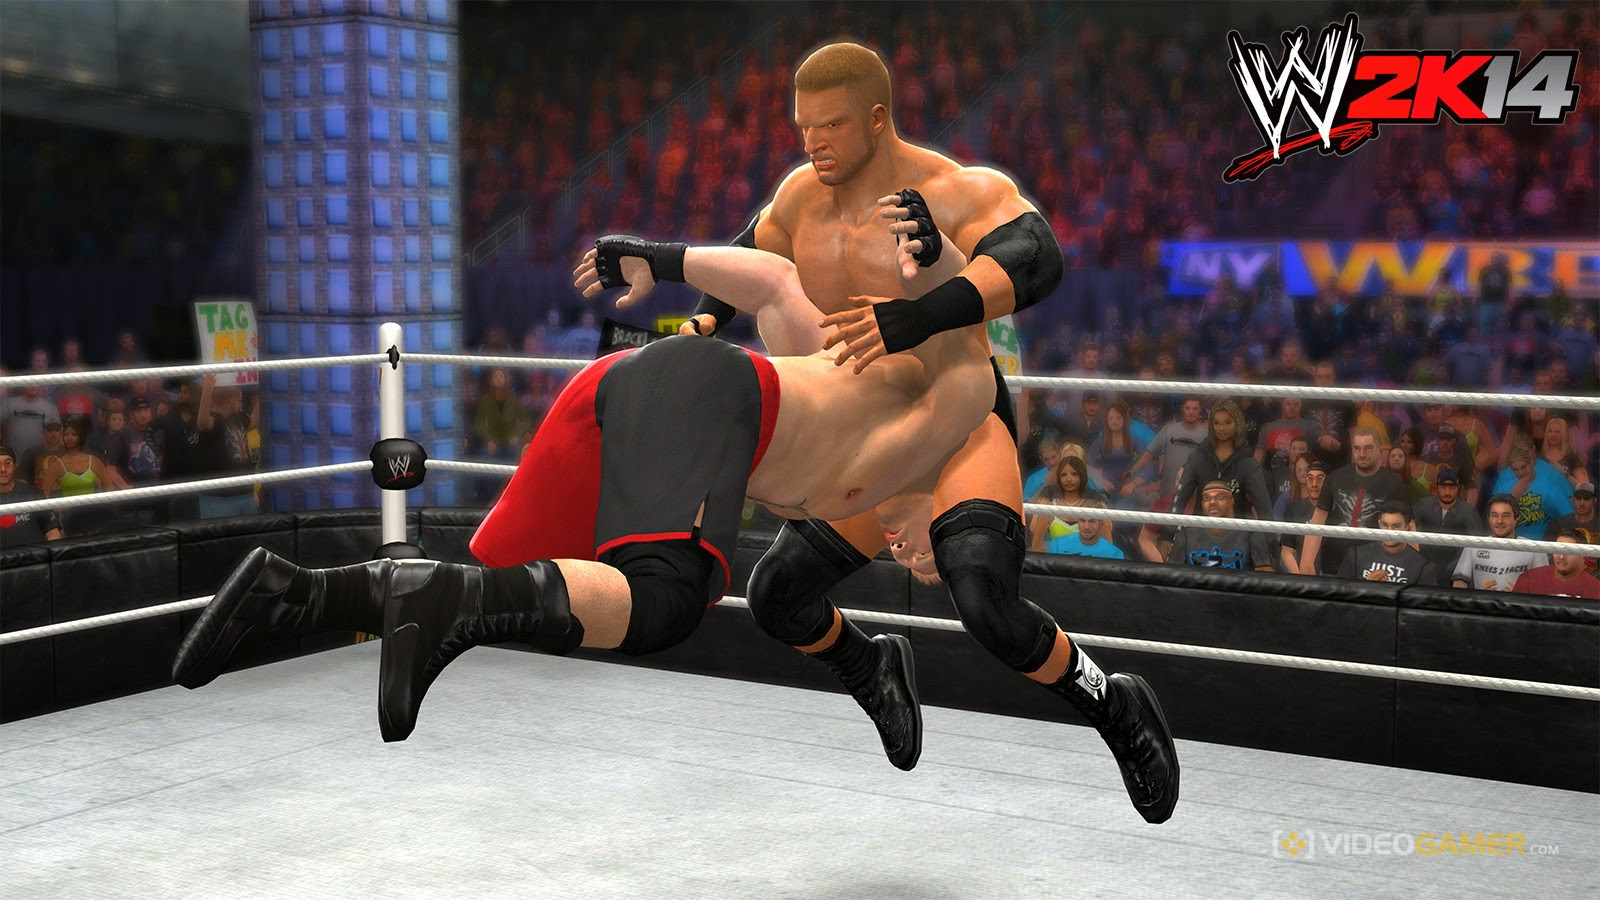 Wwe 2k14 Game For Xbox 360  Top Games Free Download Full